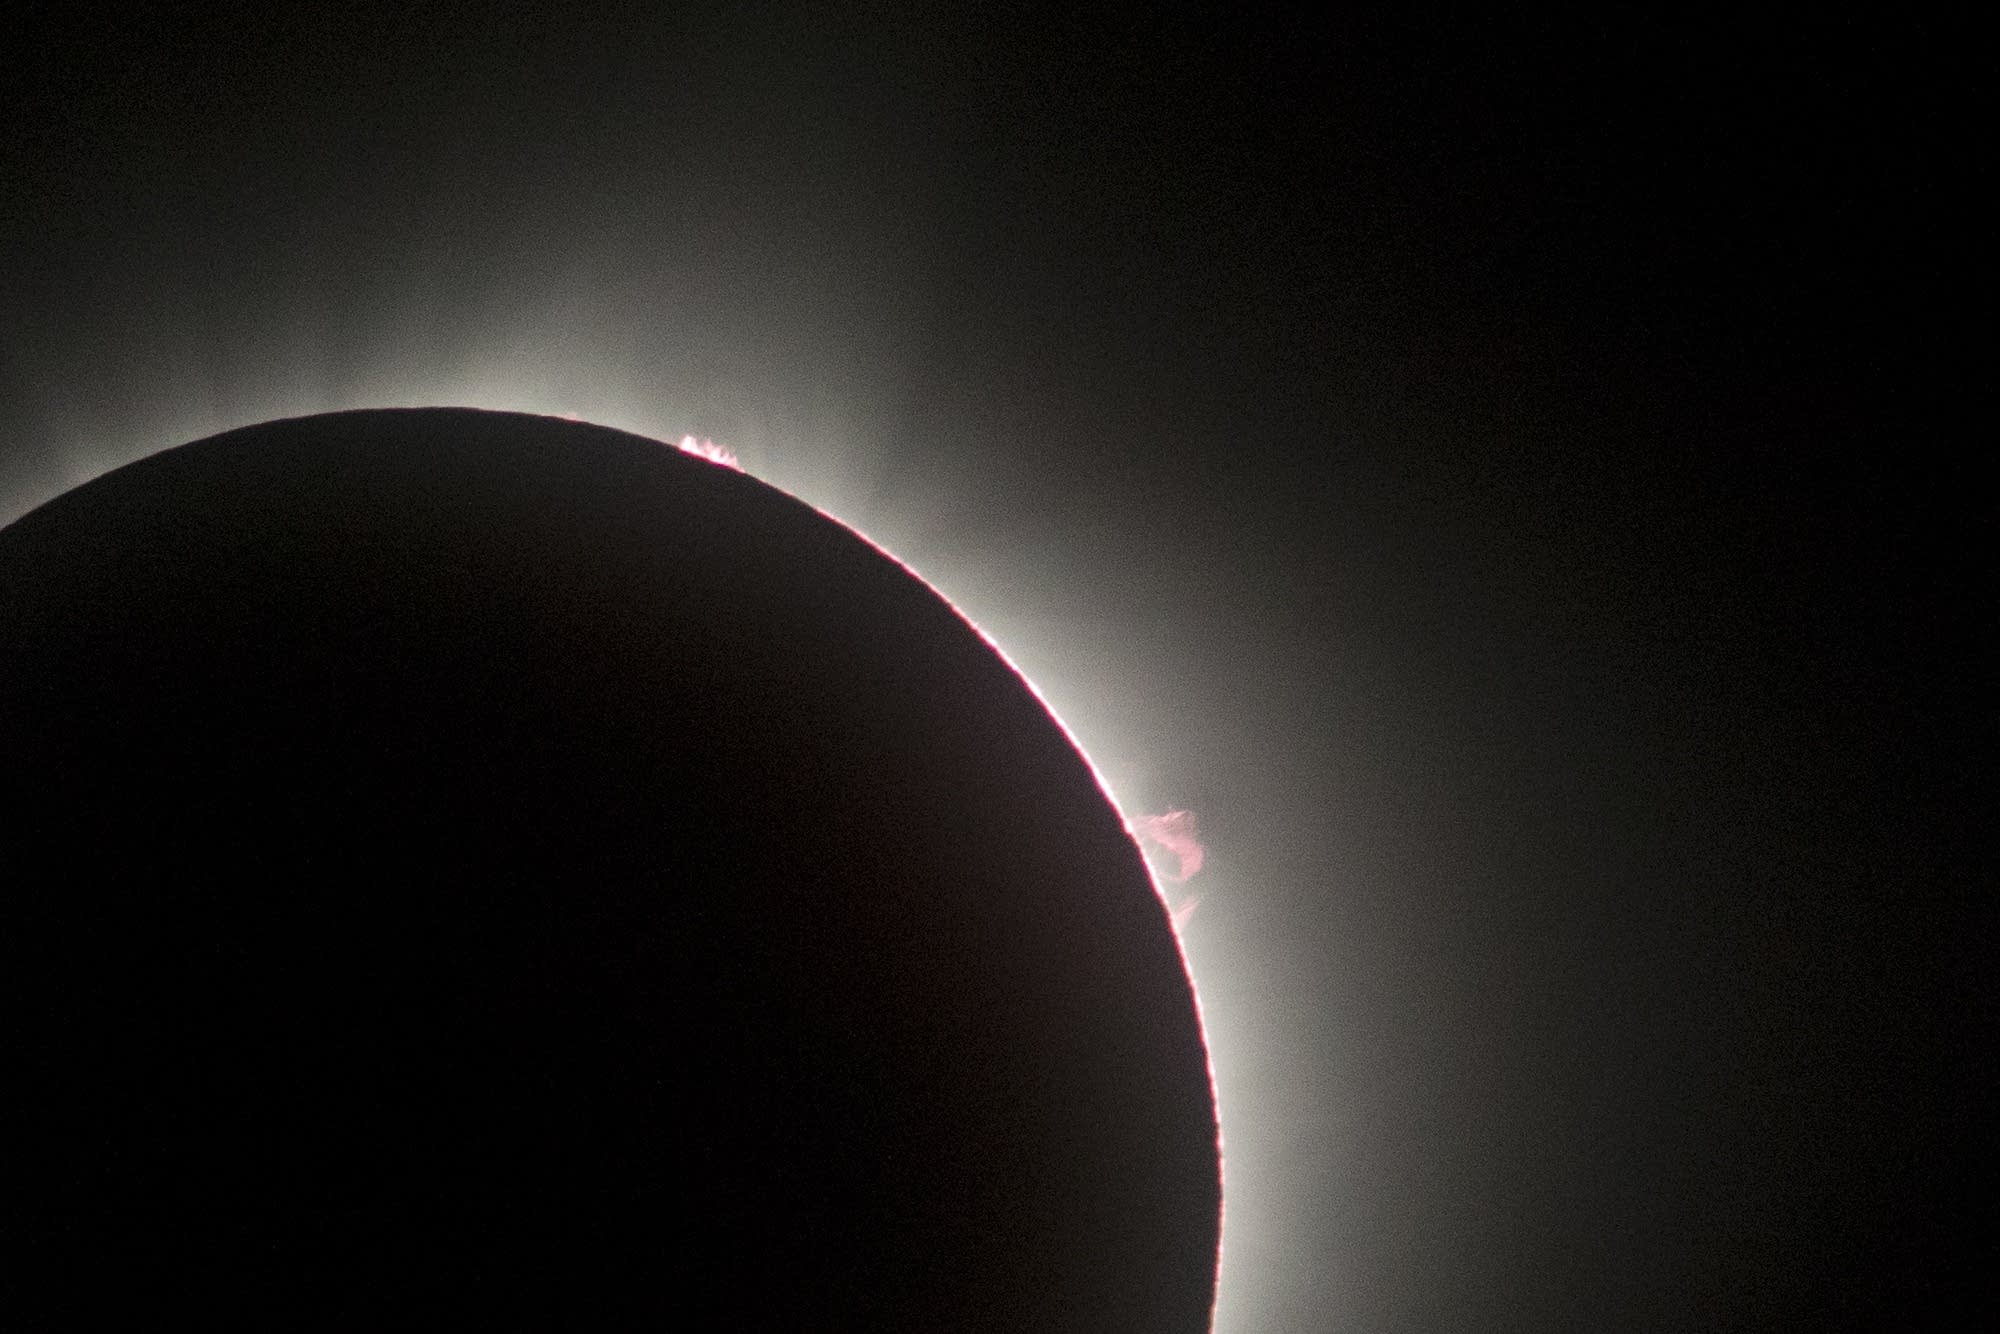 The pink layer around the moon is called the chromosphere.